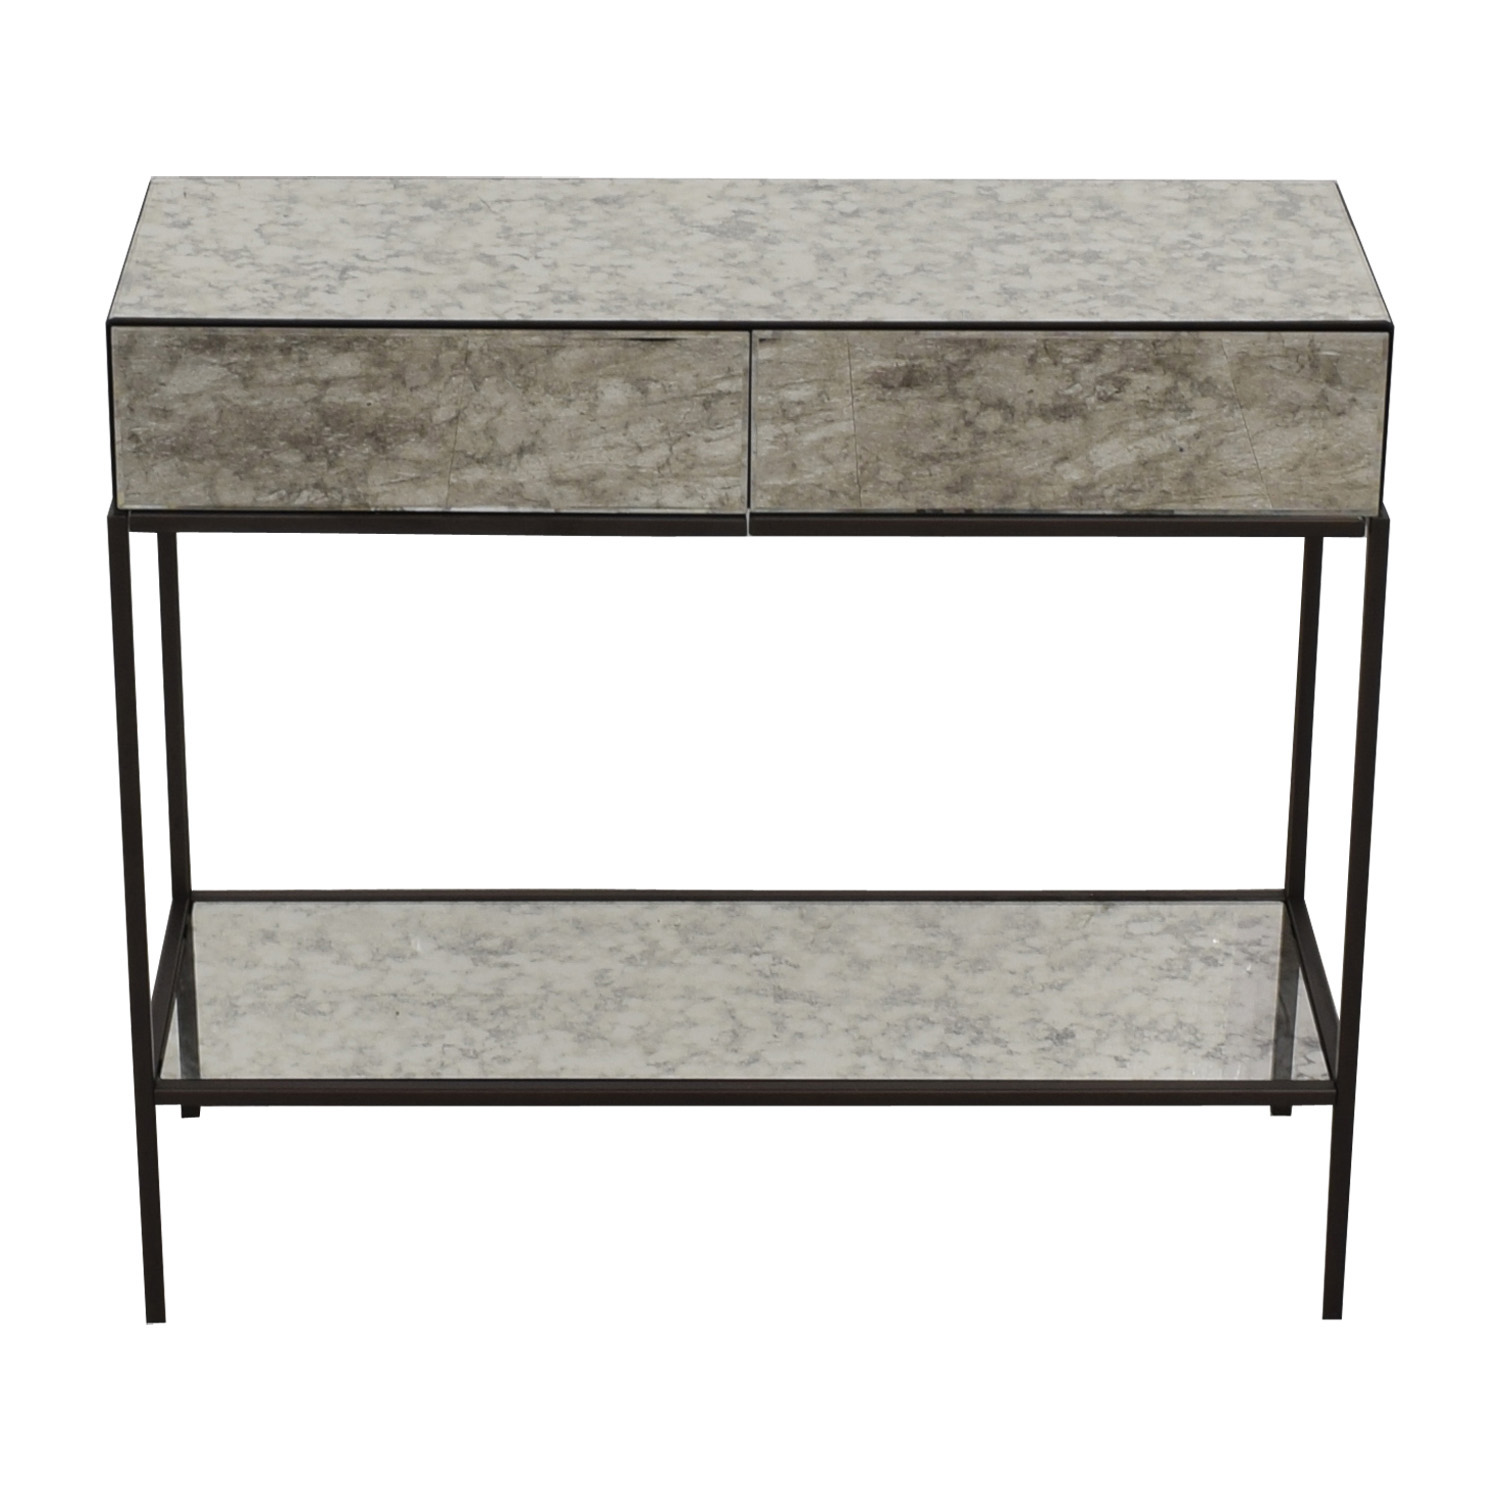 buy West Elm West Elm Two-Drawer Mirrored Accent Table online